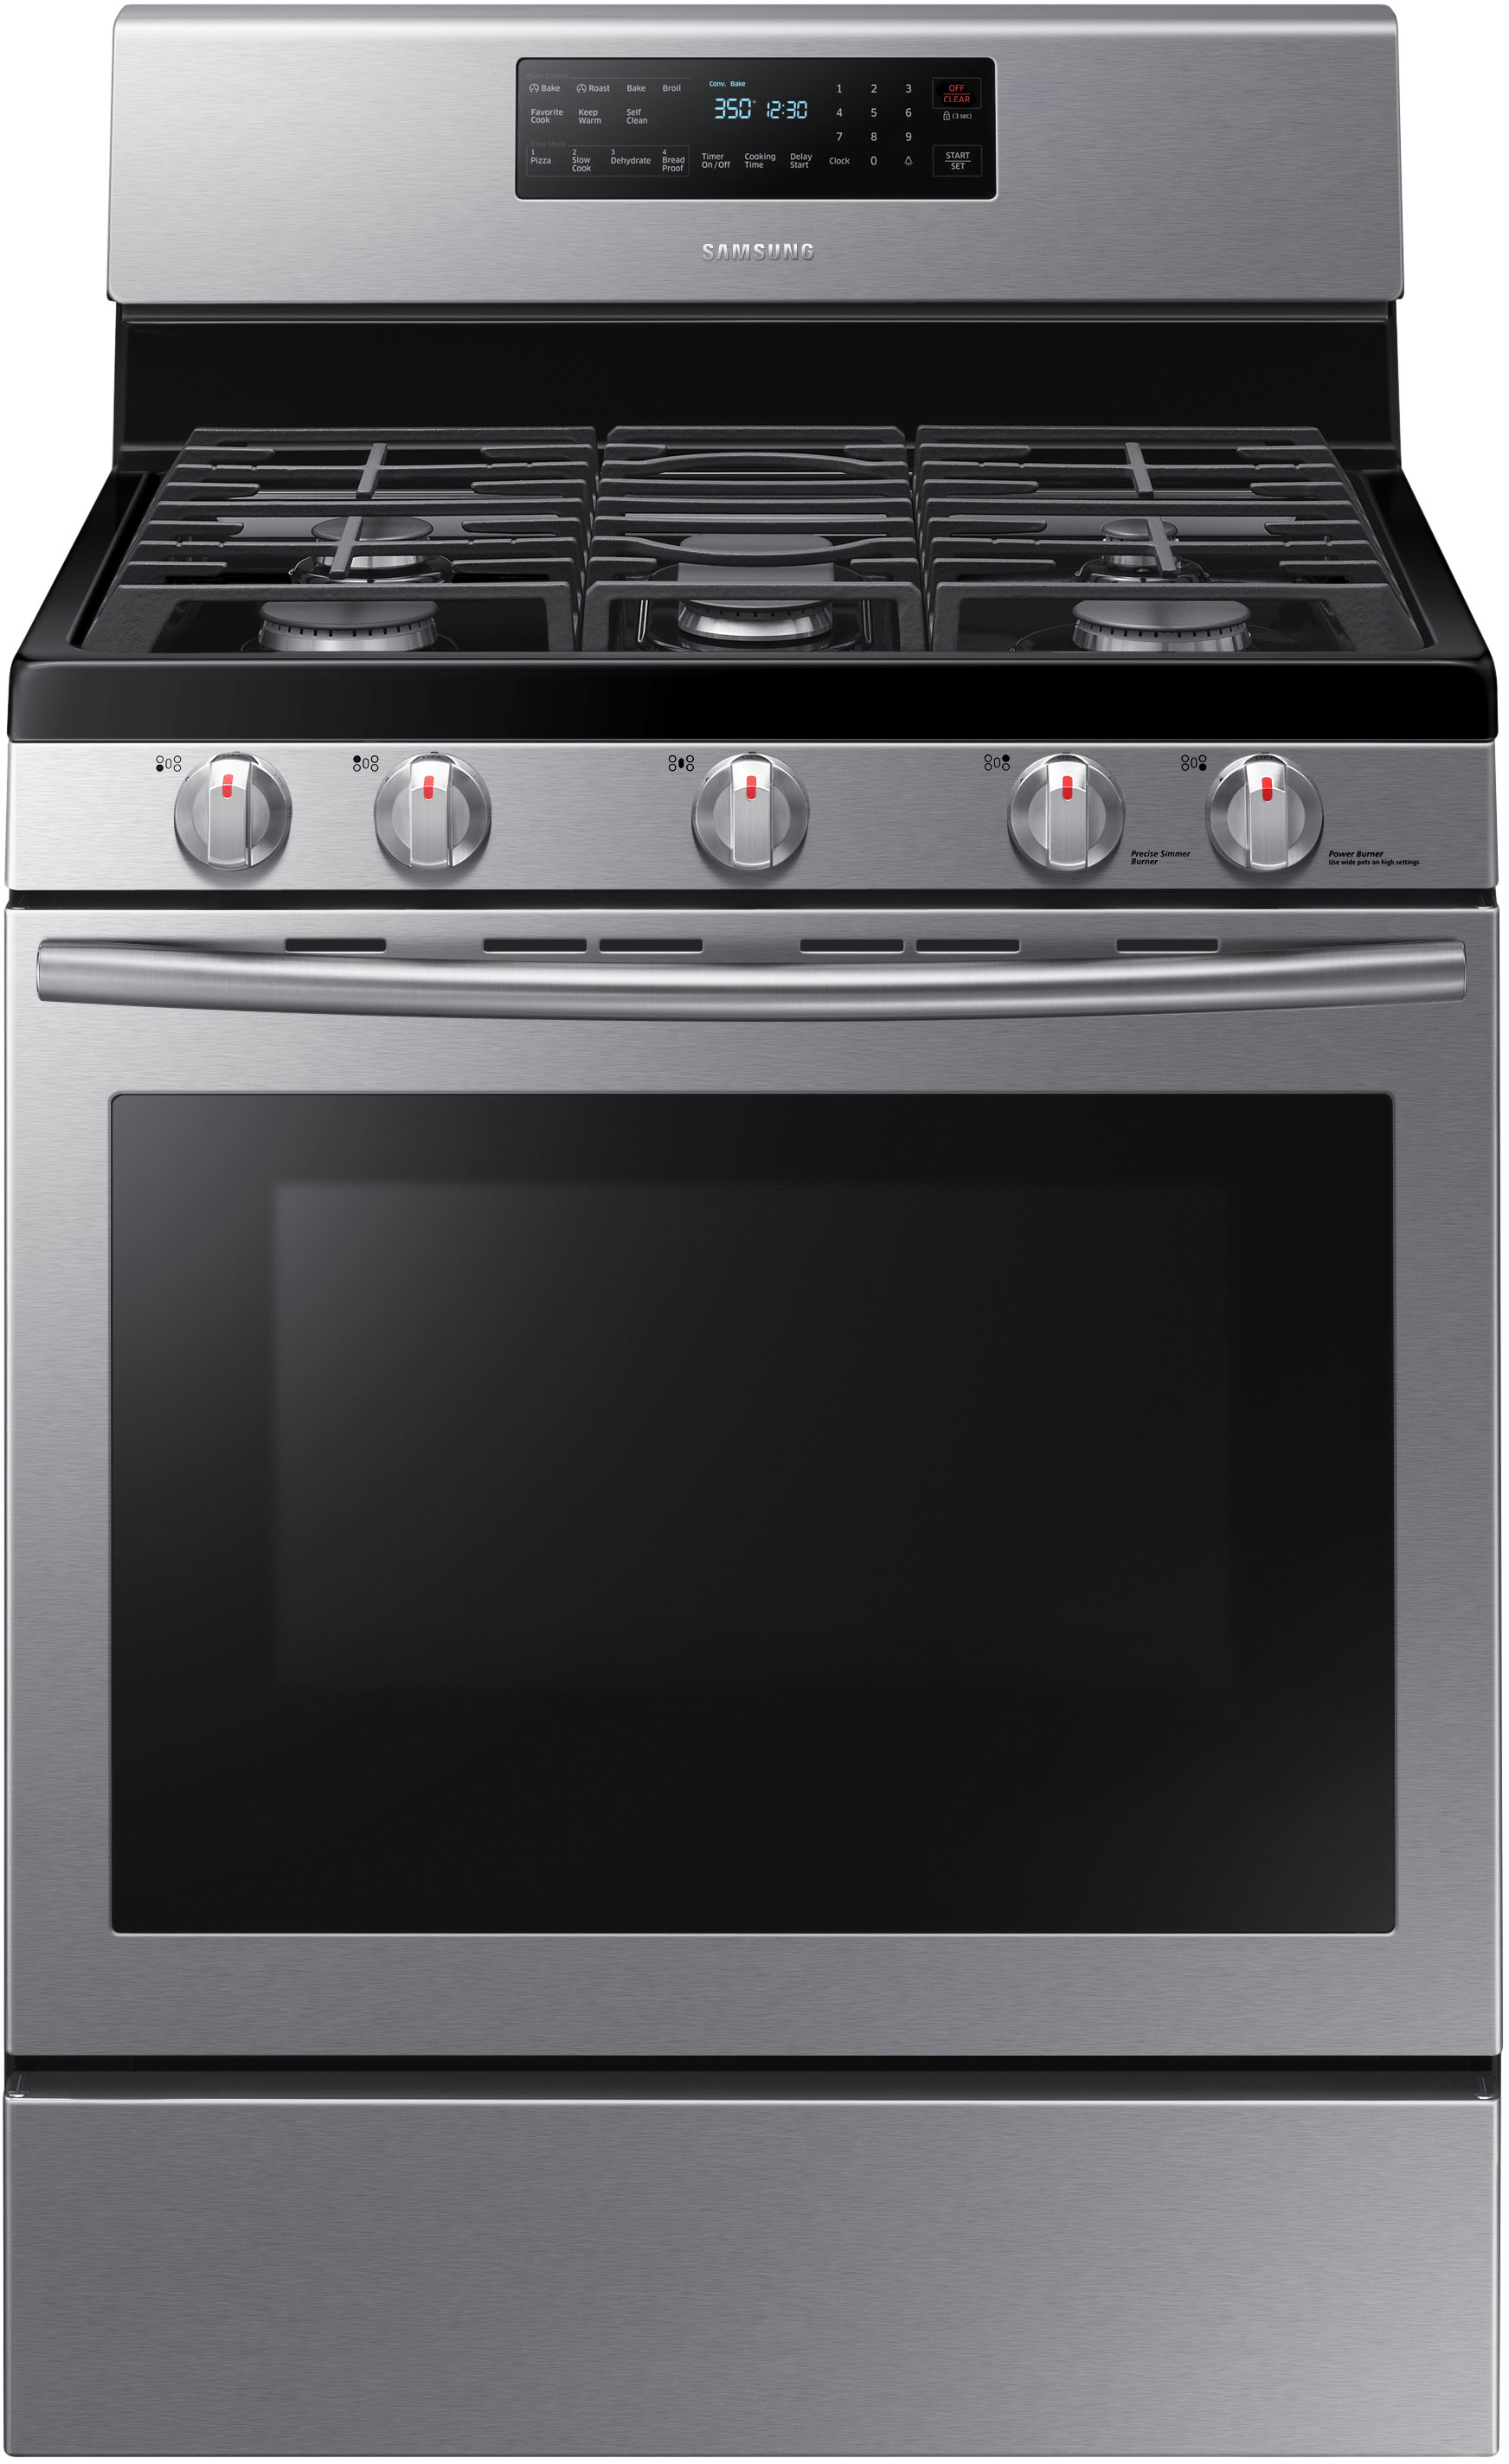 Samsung Nx58h5600ss 30 Inch Freestanding Gas Range With 5